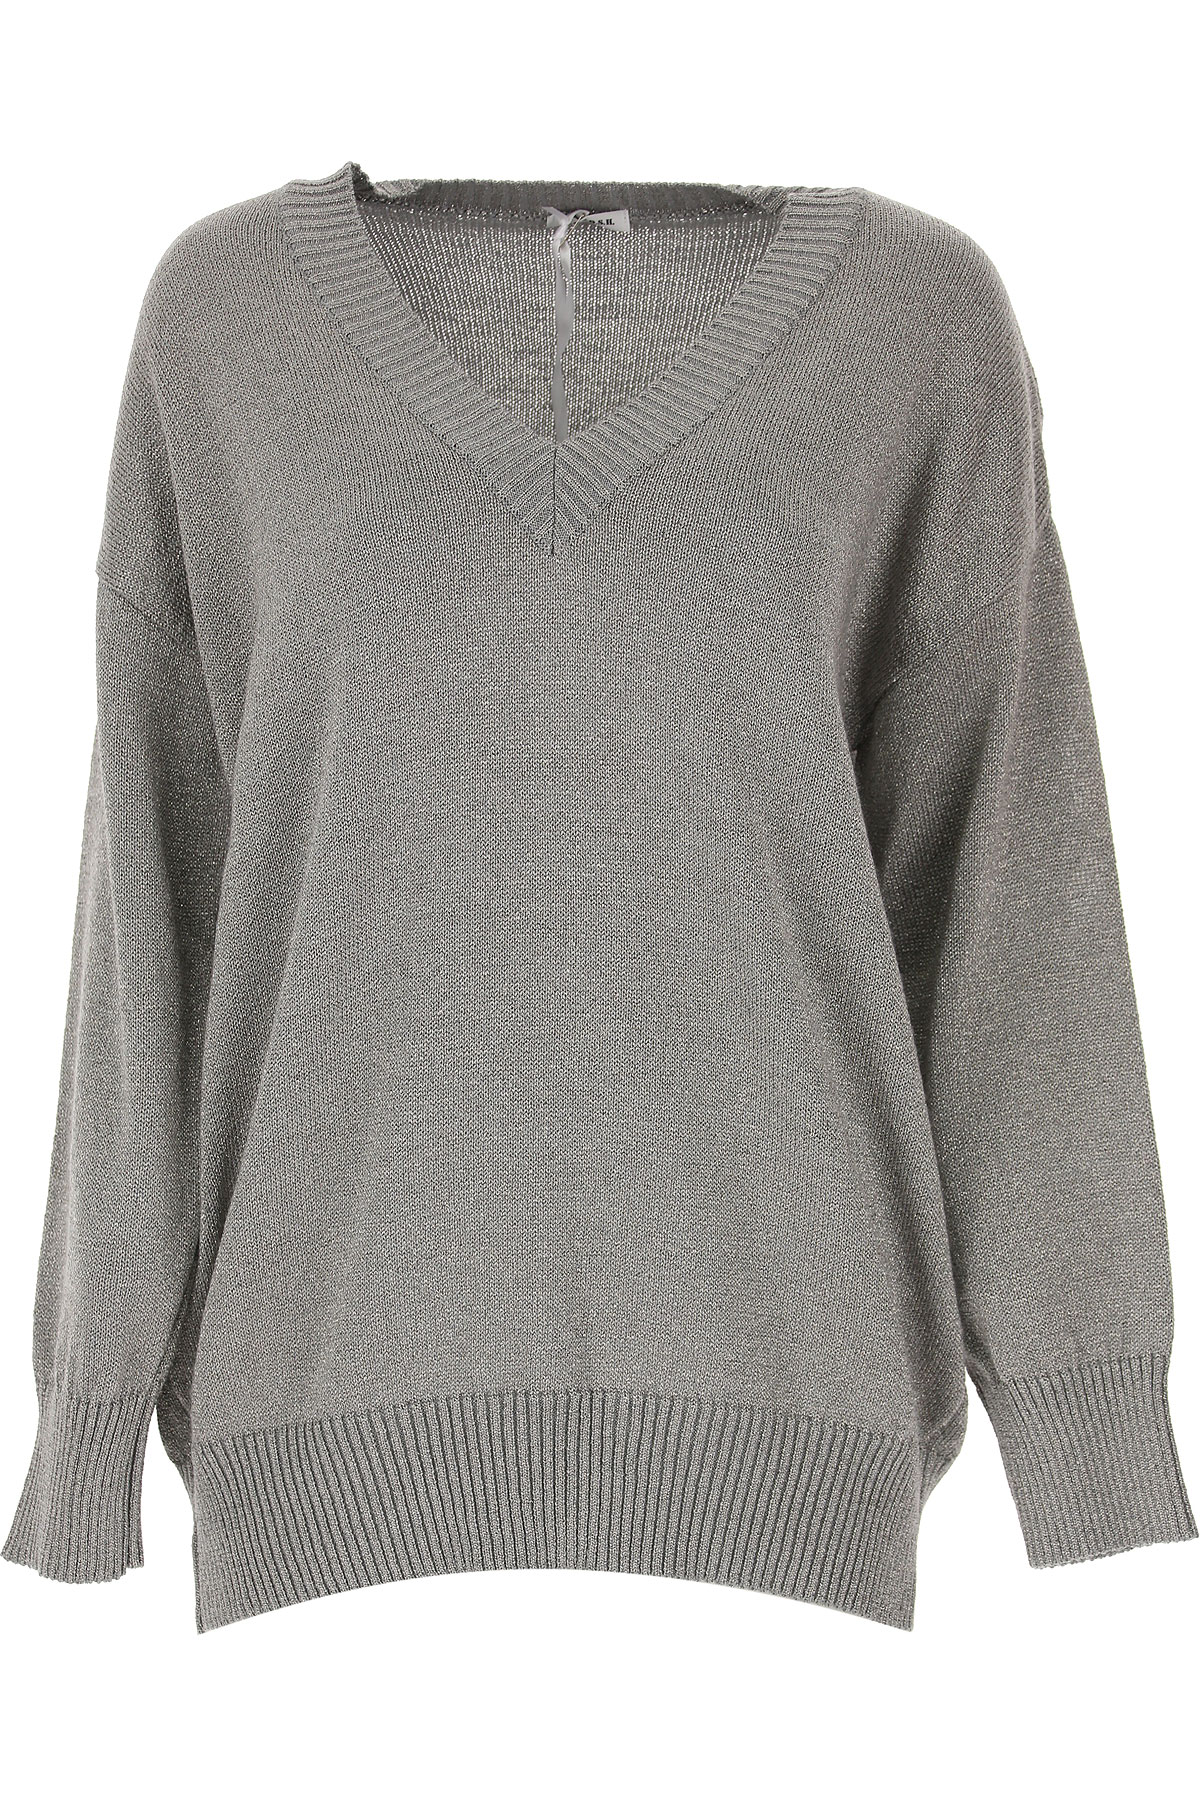 P.A.R.O.S.H. Sweater for Women Jumper On Sale, Silver, Wool, 2019, 2 4 6 8